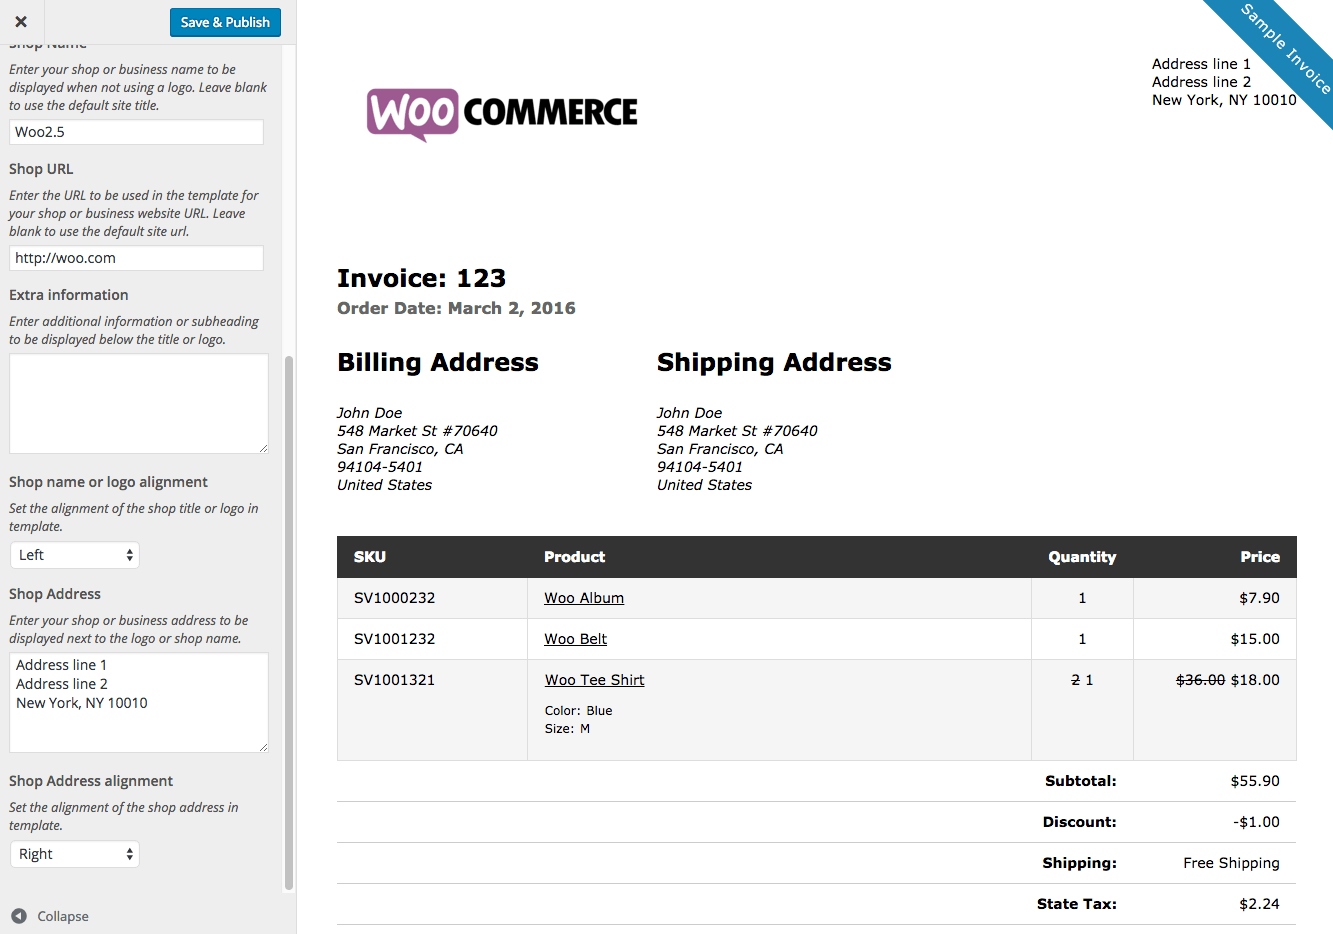 Howcanigettallerus  Prepossessing Woocommerce Print Invoices Amp Packing Lists  Woocommerce Docs With Hot Woocommerce Print Invoices  Packing Lists Customizer With Captivating How To Write A Receipt Also Paper Receipt In Addition Best Buy Return Without A Receipt And How To Get Uber Receipt As Well As Receipt Tracker Additionally Target No Receipt Return Policy From Docswoocommercecom With Howcanigettallerus  Hot Woocommerce Print Invoices Amp Packing Lists  Woocommerce Docs With Captivating Woocommerce Print Invoices  Packing Lists Customizer And Prepossessing How To Write A Receipt Also Paper Receipt In Addition Best Buy Return Without A Receipt From Docswoocommercecom